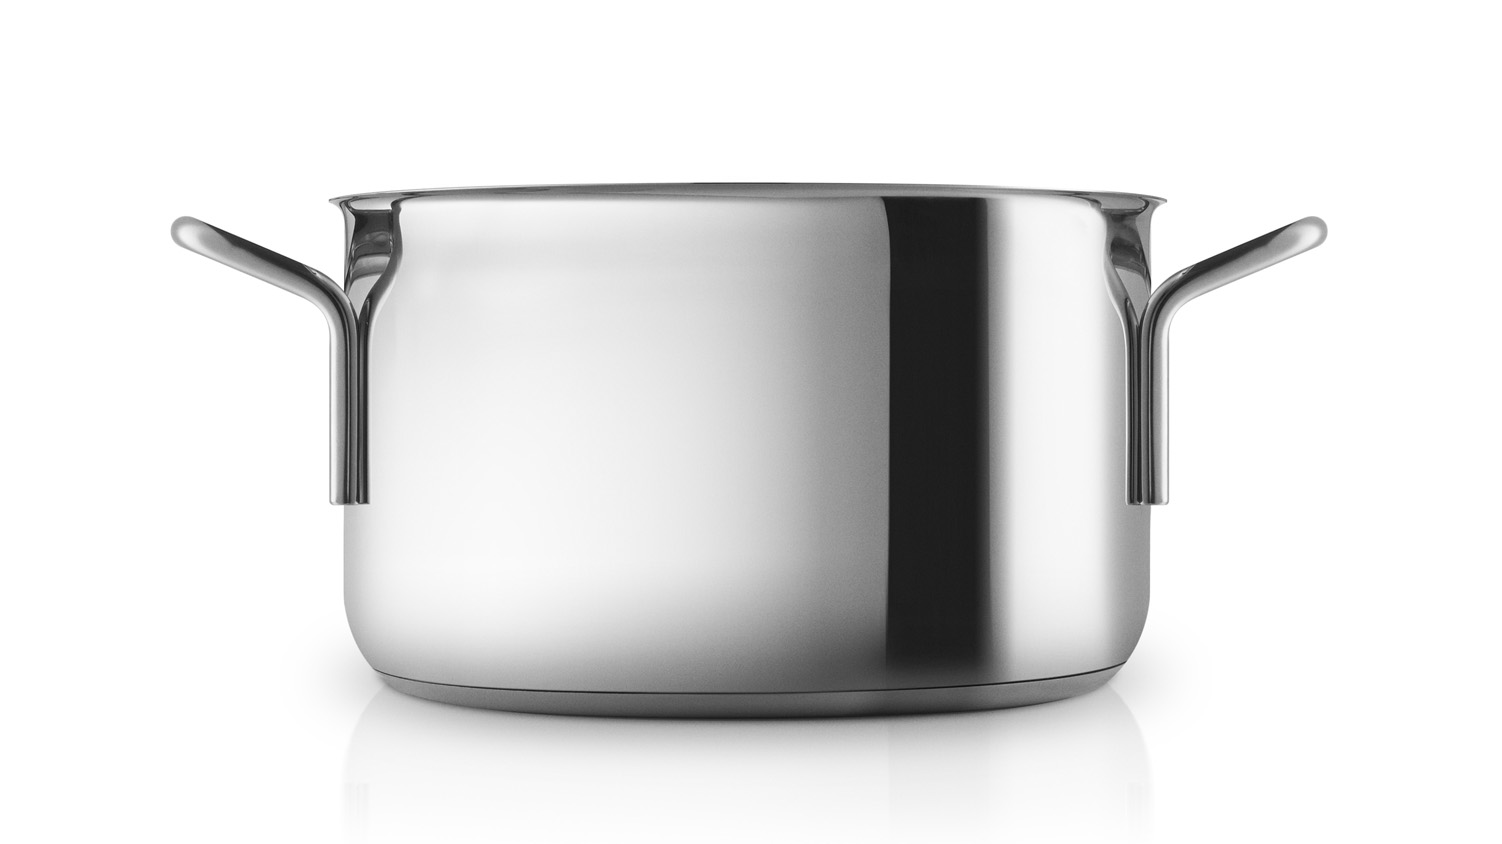 <p>The series are made of stainless steel, and the pans come with either a non-stick Slip-Let® or ceramic coating. The encapsulated sandwich base has an aluminium core, which ensures that the heat is distributed faster and more evenly.</p> <p><strong>The Stainless steel series is good for: Ragouts, soups, pasta, potatoes and vegetables.</strong></p>